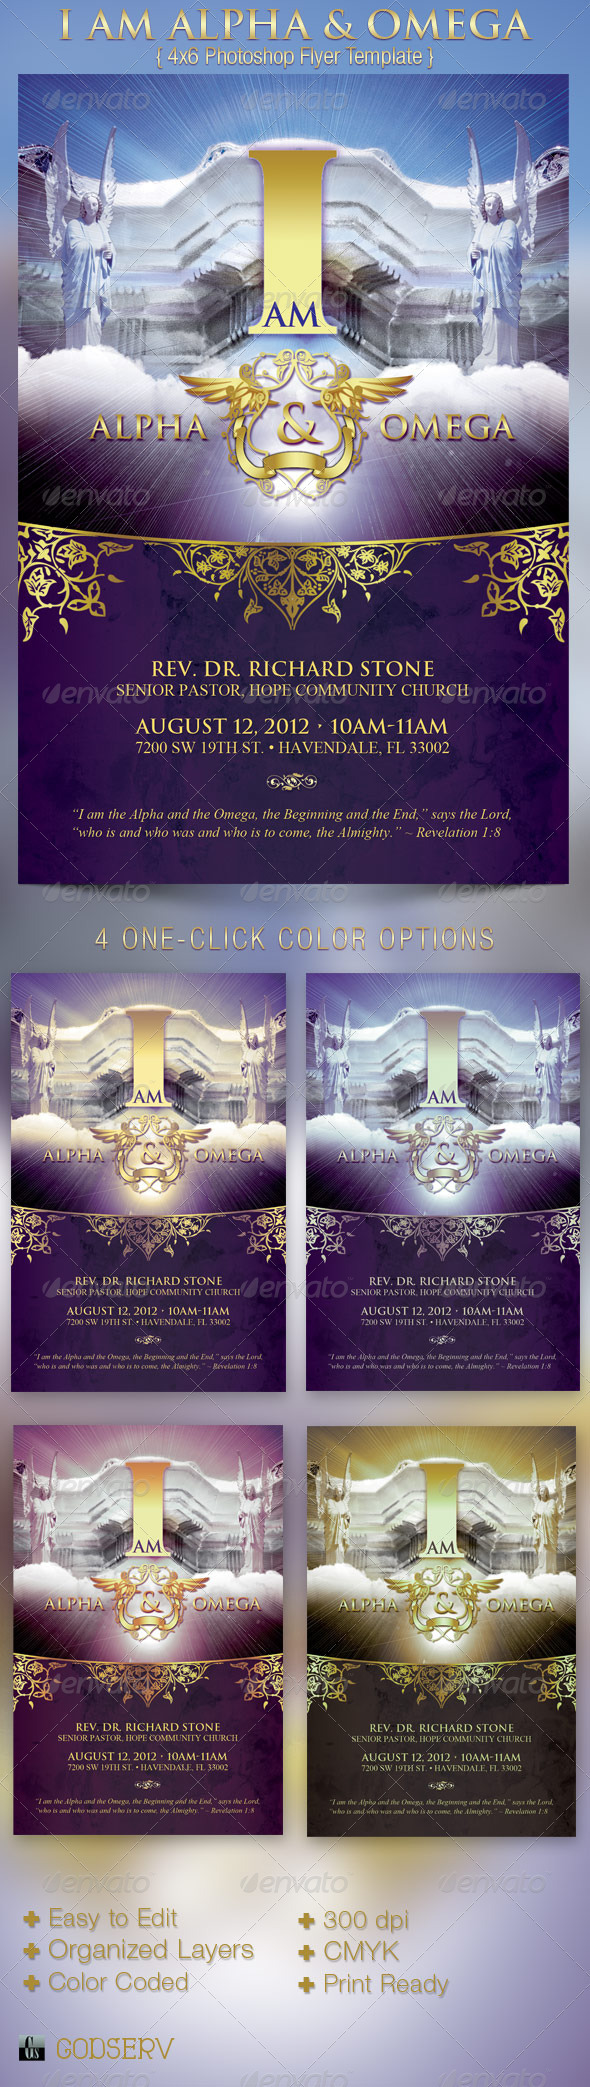 I Am Alpha and Omega Church Flyer Template - Church Flyers